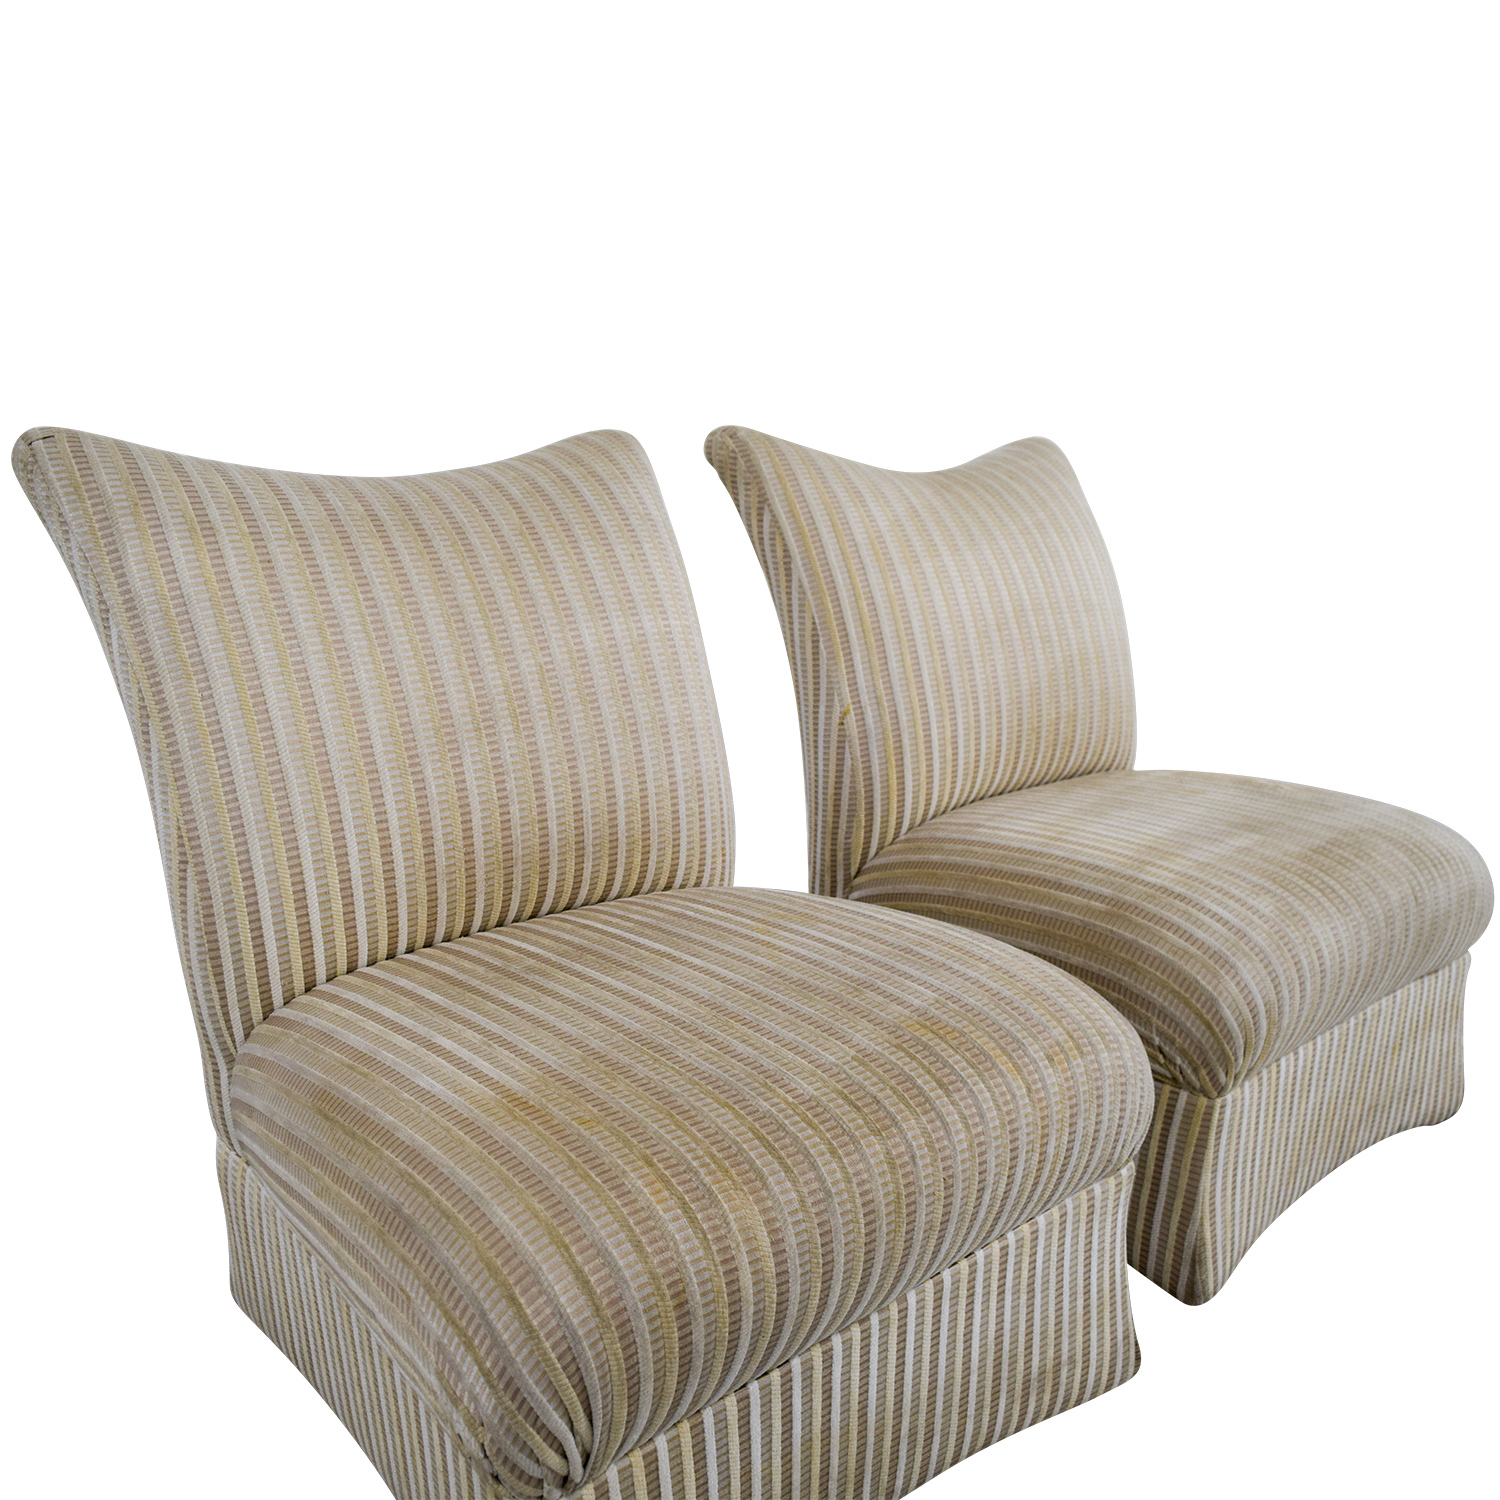 ethan allen recliners chairs doc mcstuffins chair and table set 90 off striped accent